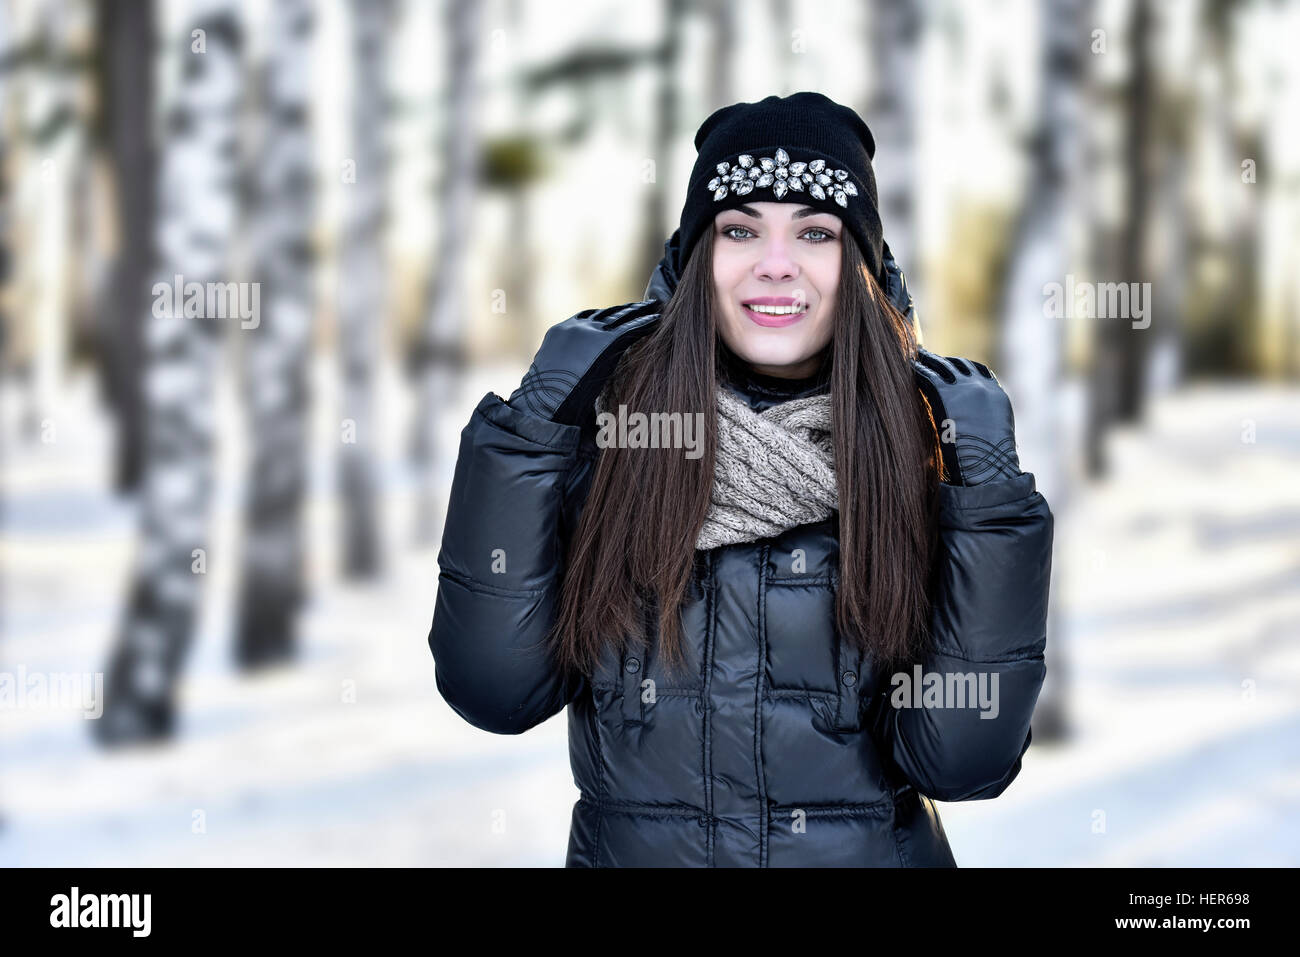 The girl with dark long hair in the winter park - Stock Image